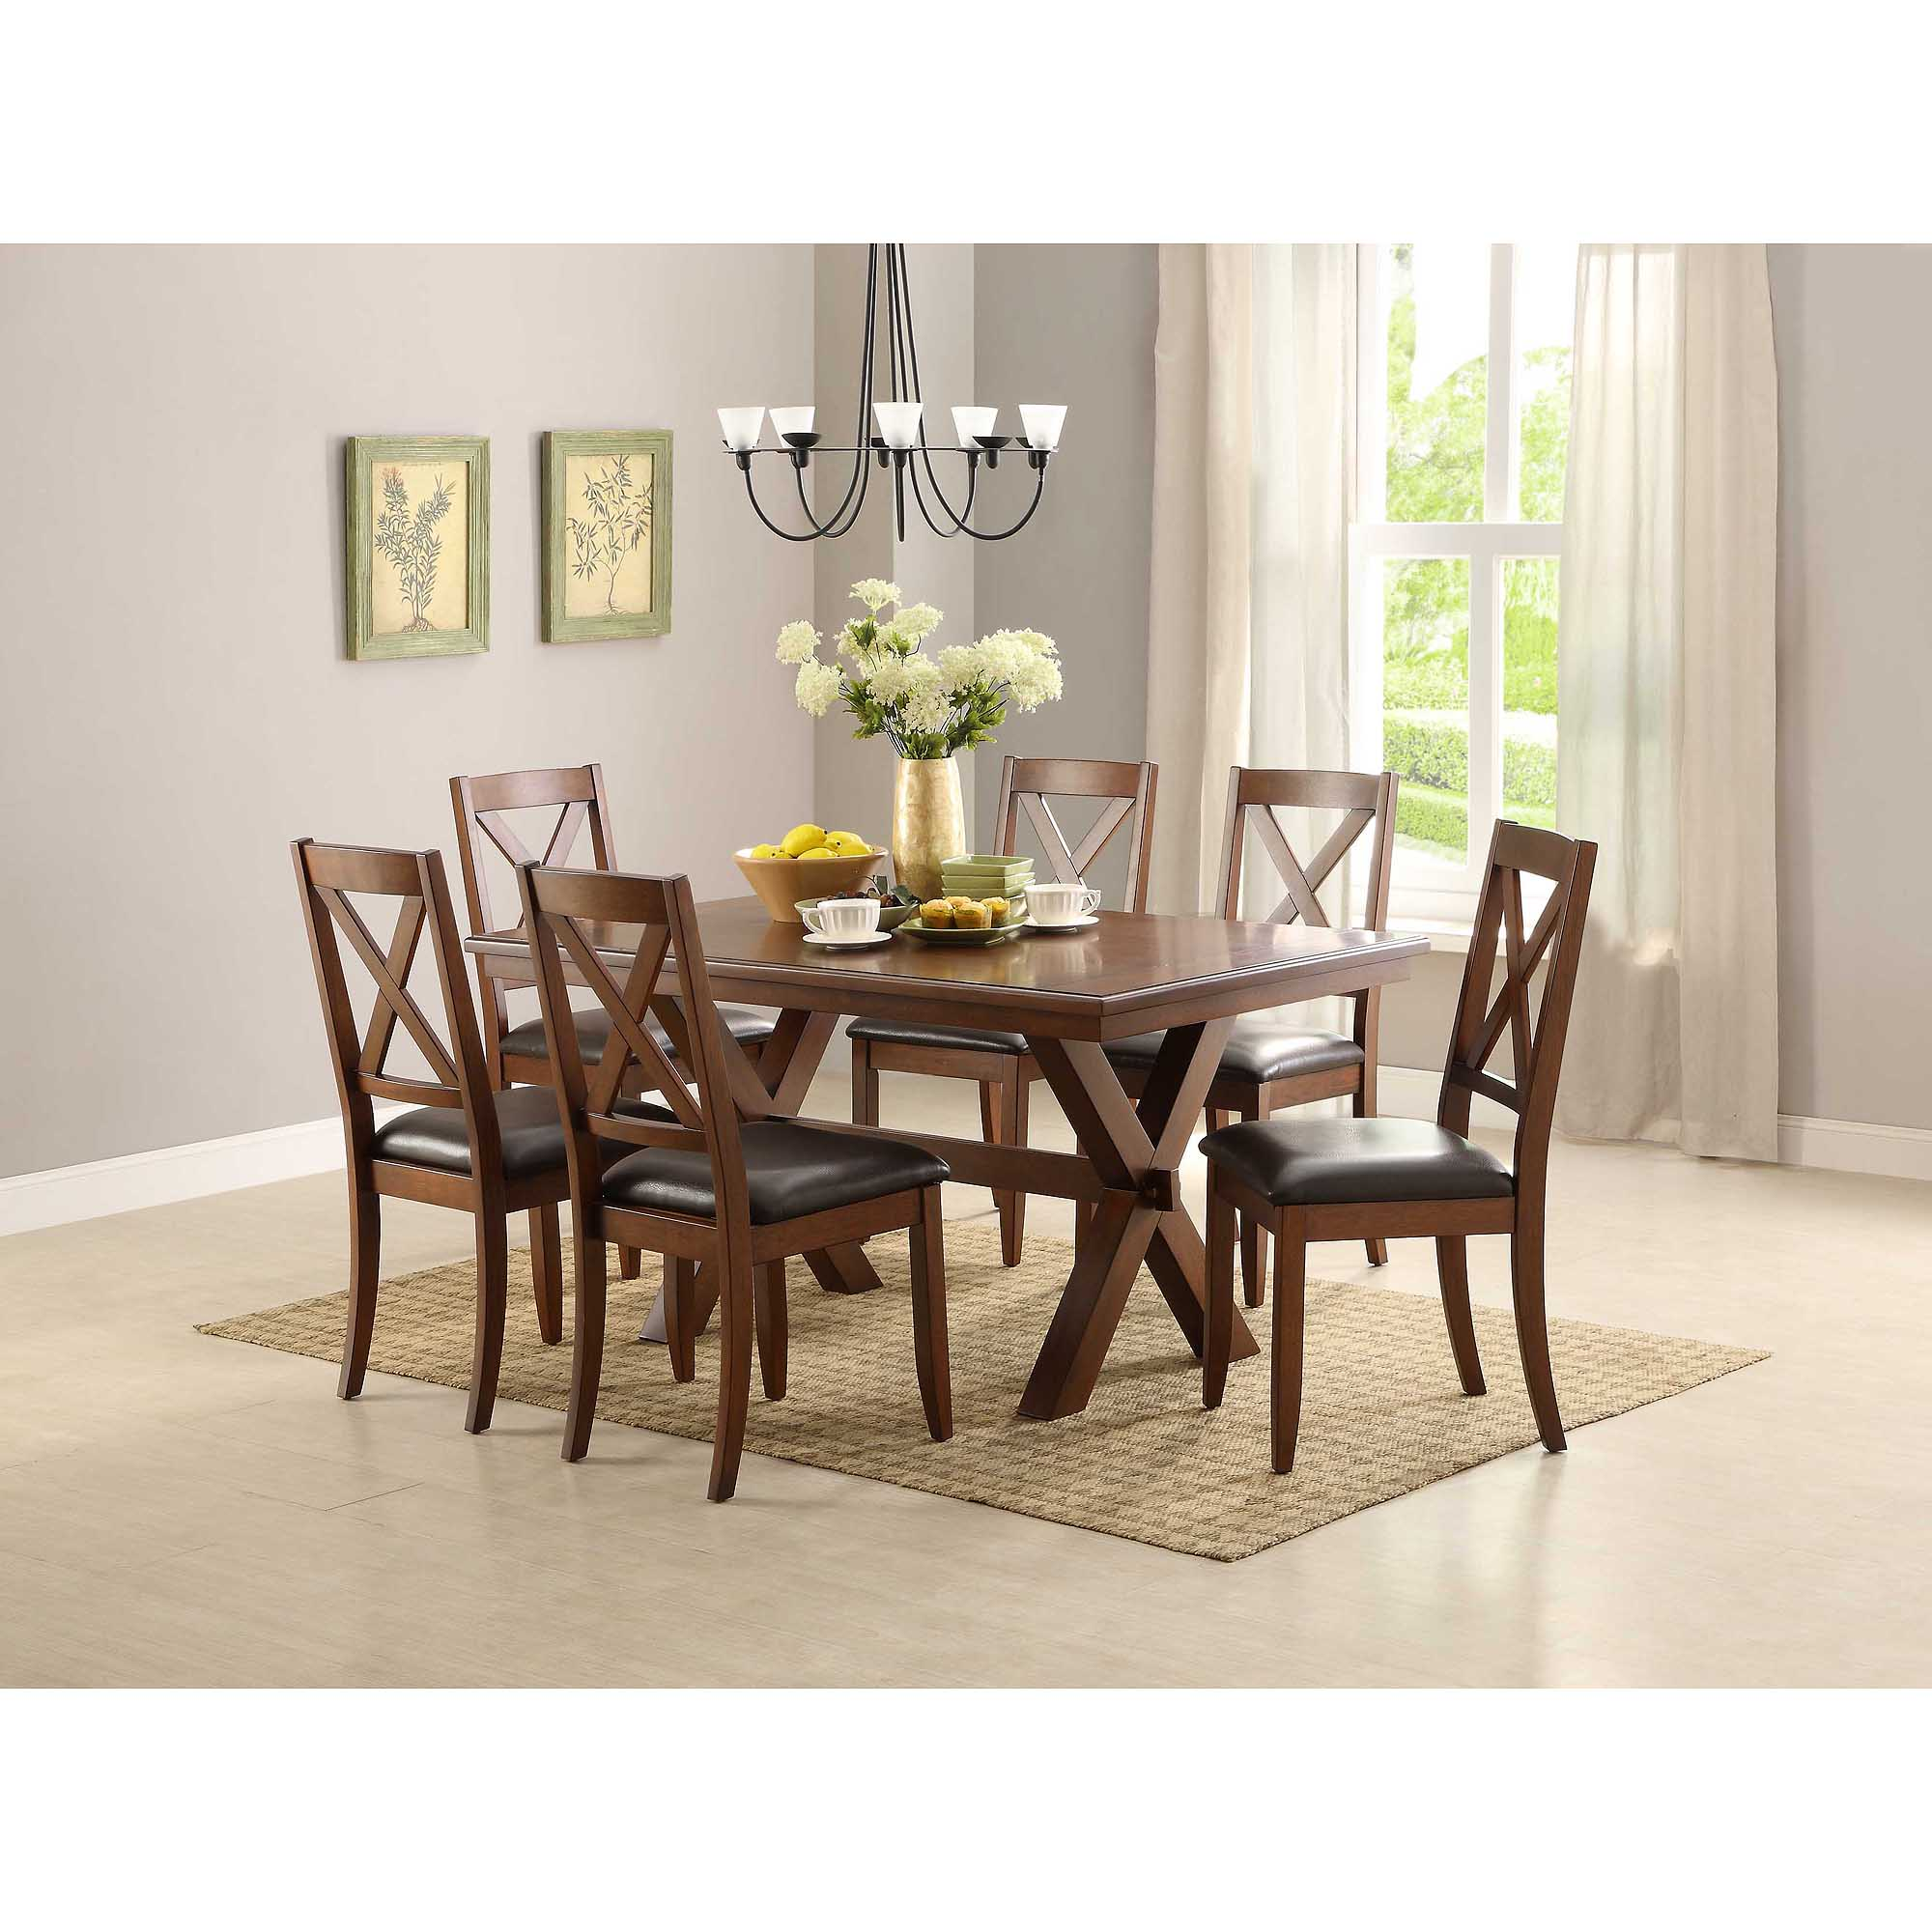 Better Homes And Gardens Maddox Crossing Dining Chair Set Of - Dining room table chair